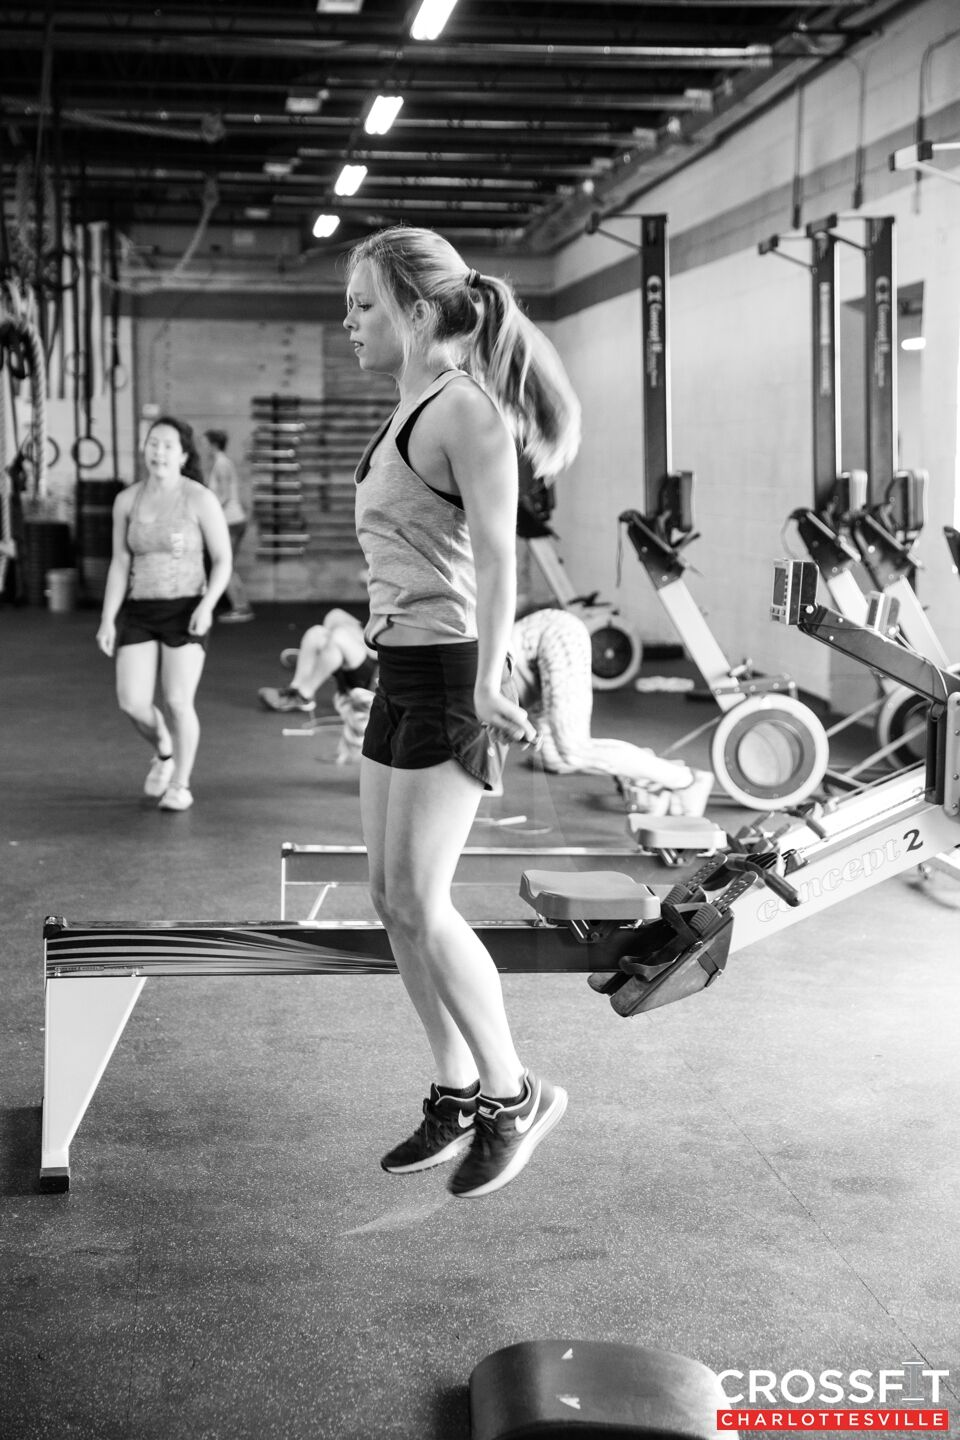 crossfit-charlottesville_0271_preview.jpeg